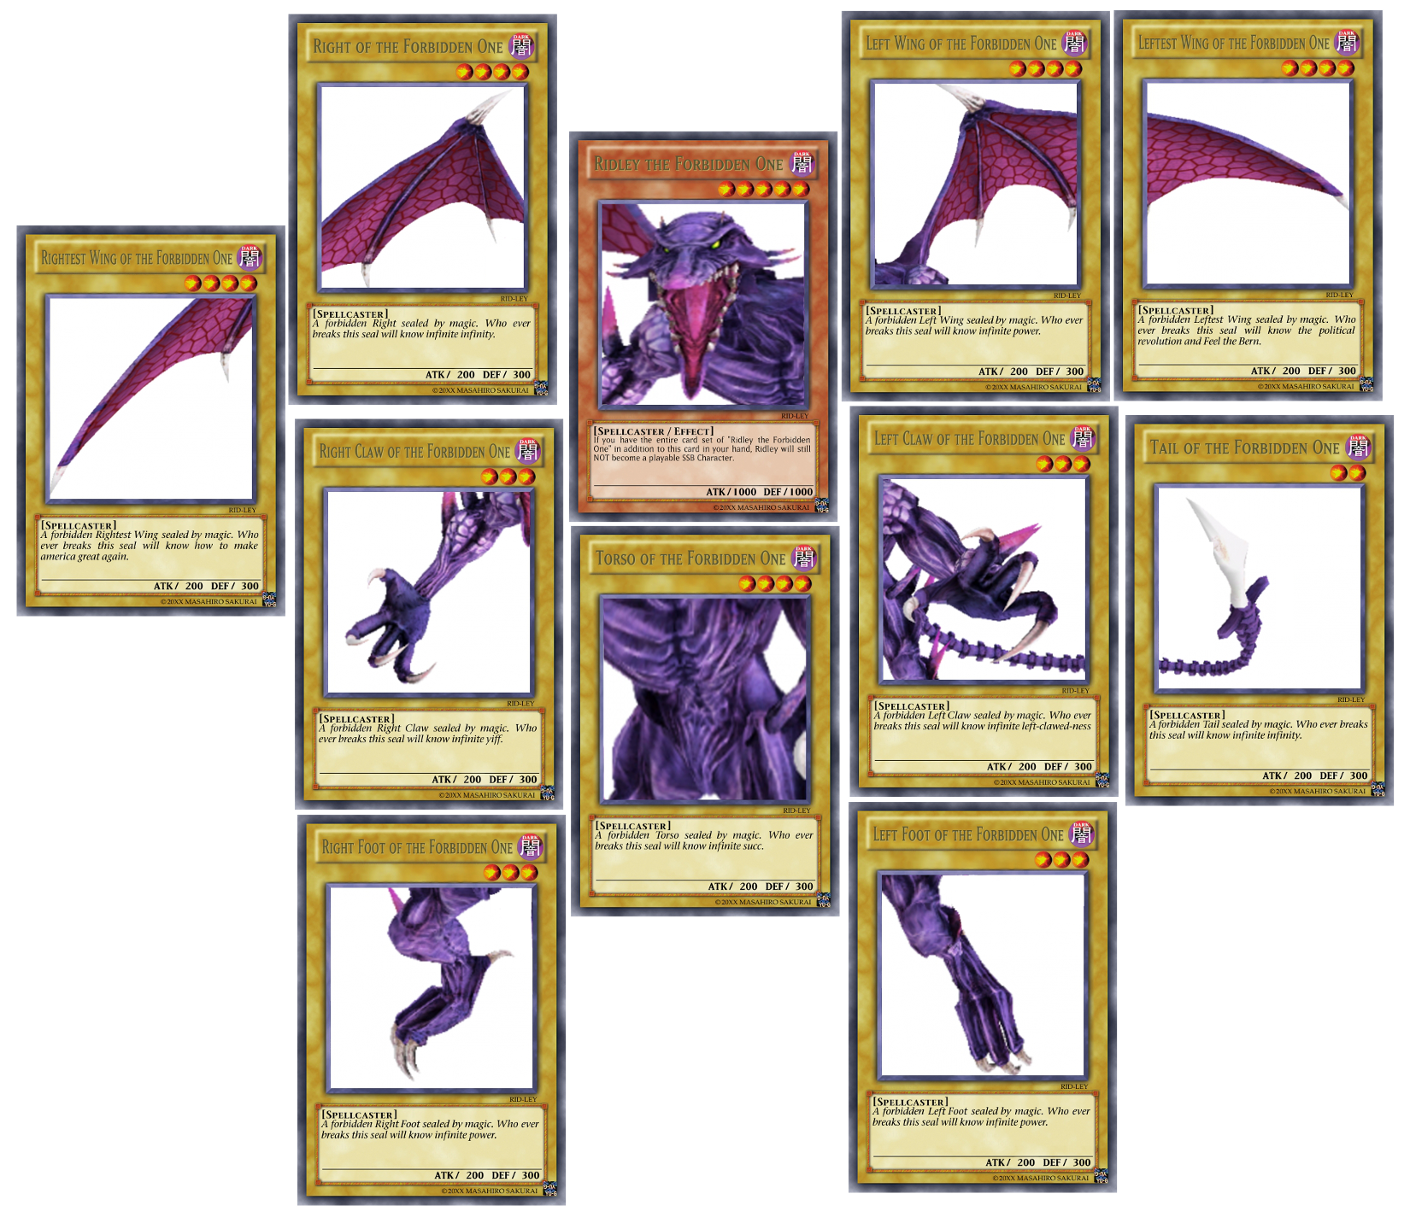 Ridley The Forbidden One Exodia The Forbidden One Know Your Meme